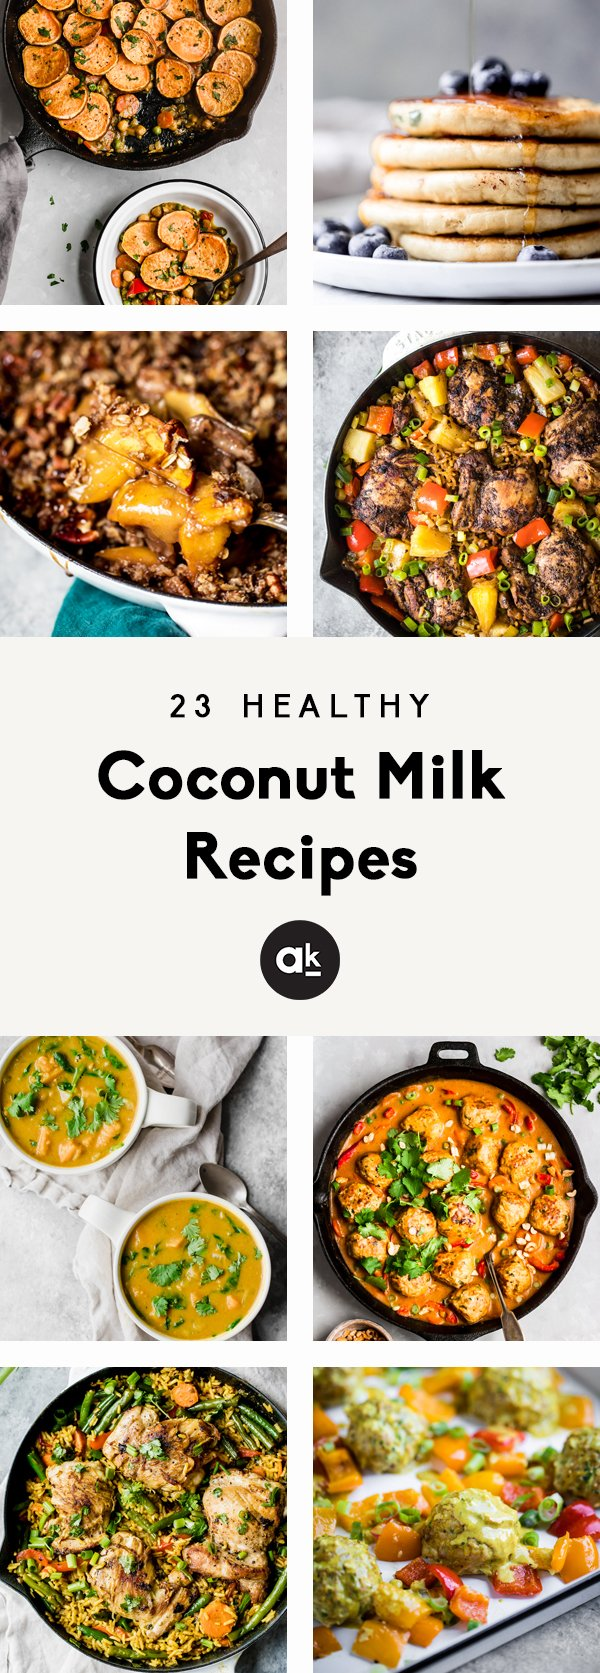 Delicious, healthy coconut milk recipes that are perfect for using up a can of coconut milk! You'll find flavorful dinner recipes and plenty of incredible desserts that are naturally dairy free thanks to coconut milk.